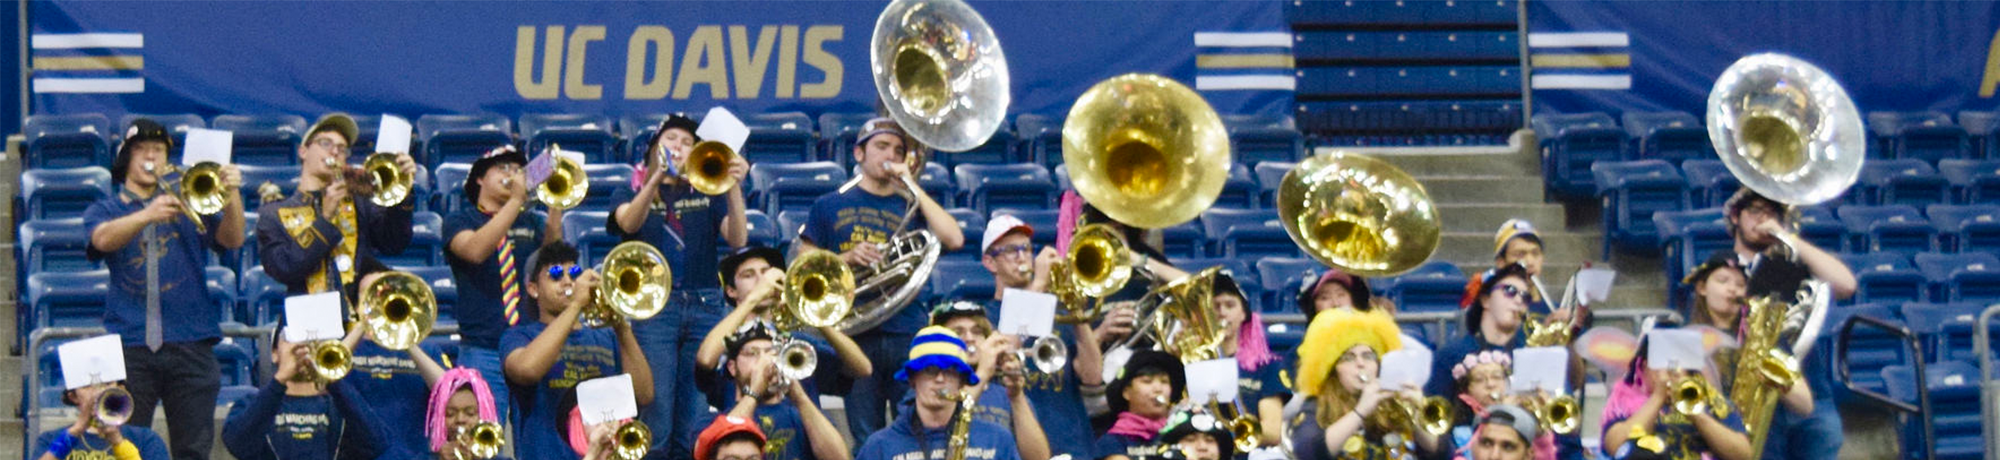 UC Davis band at a basketball game